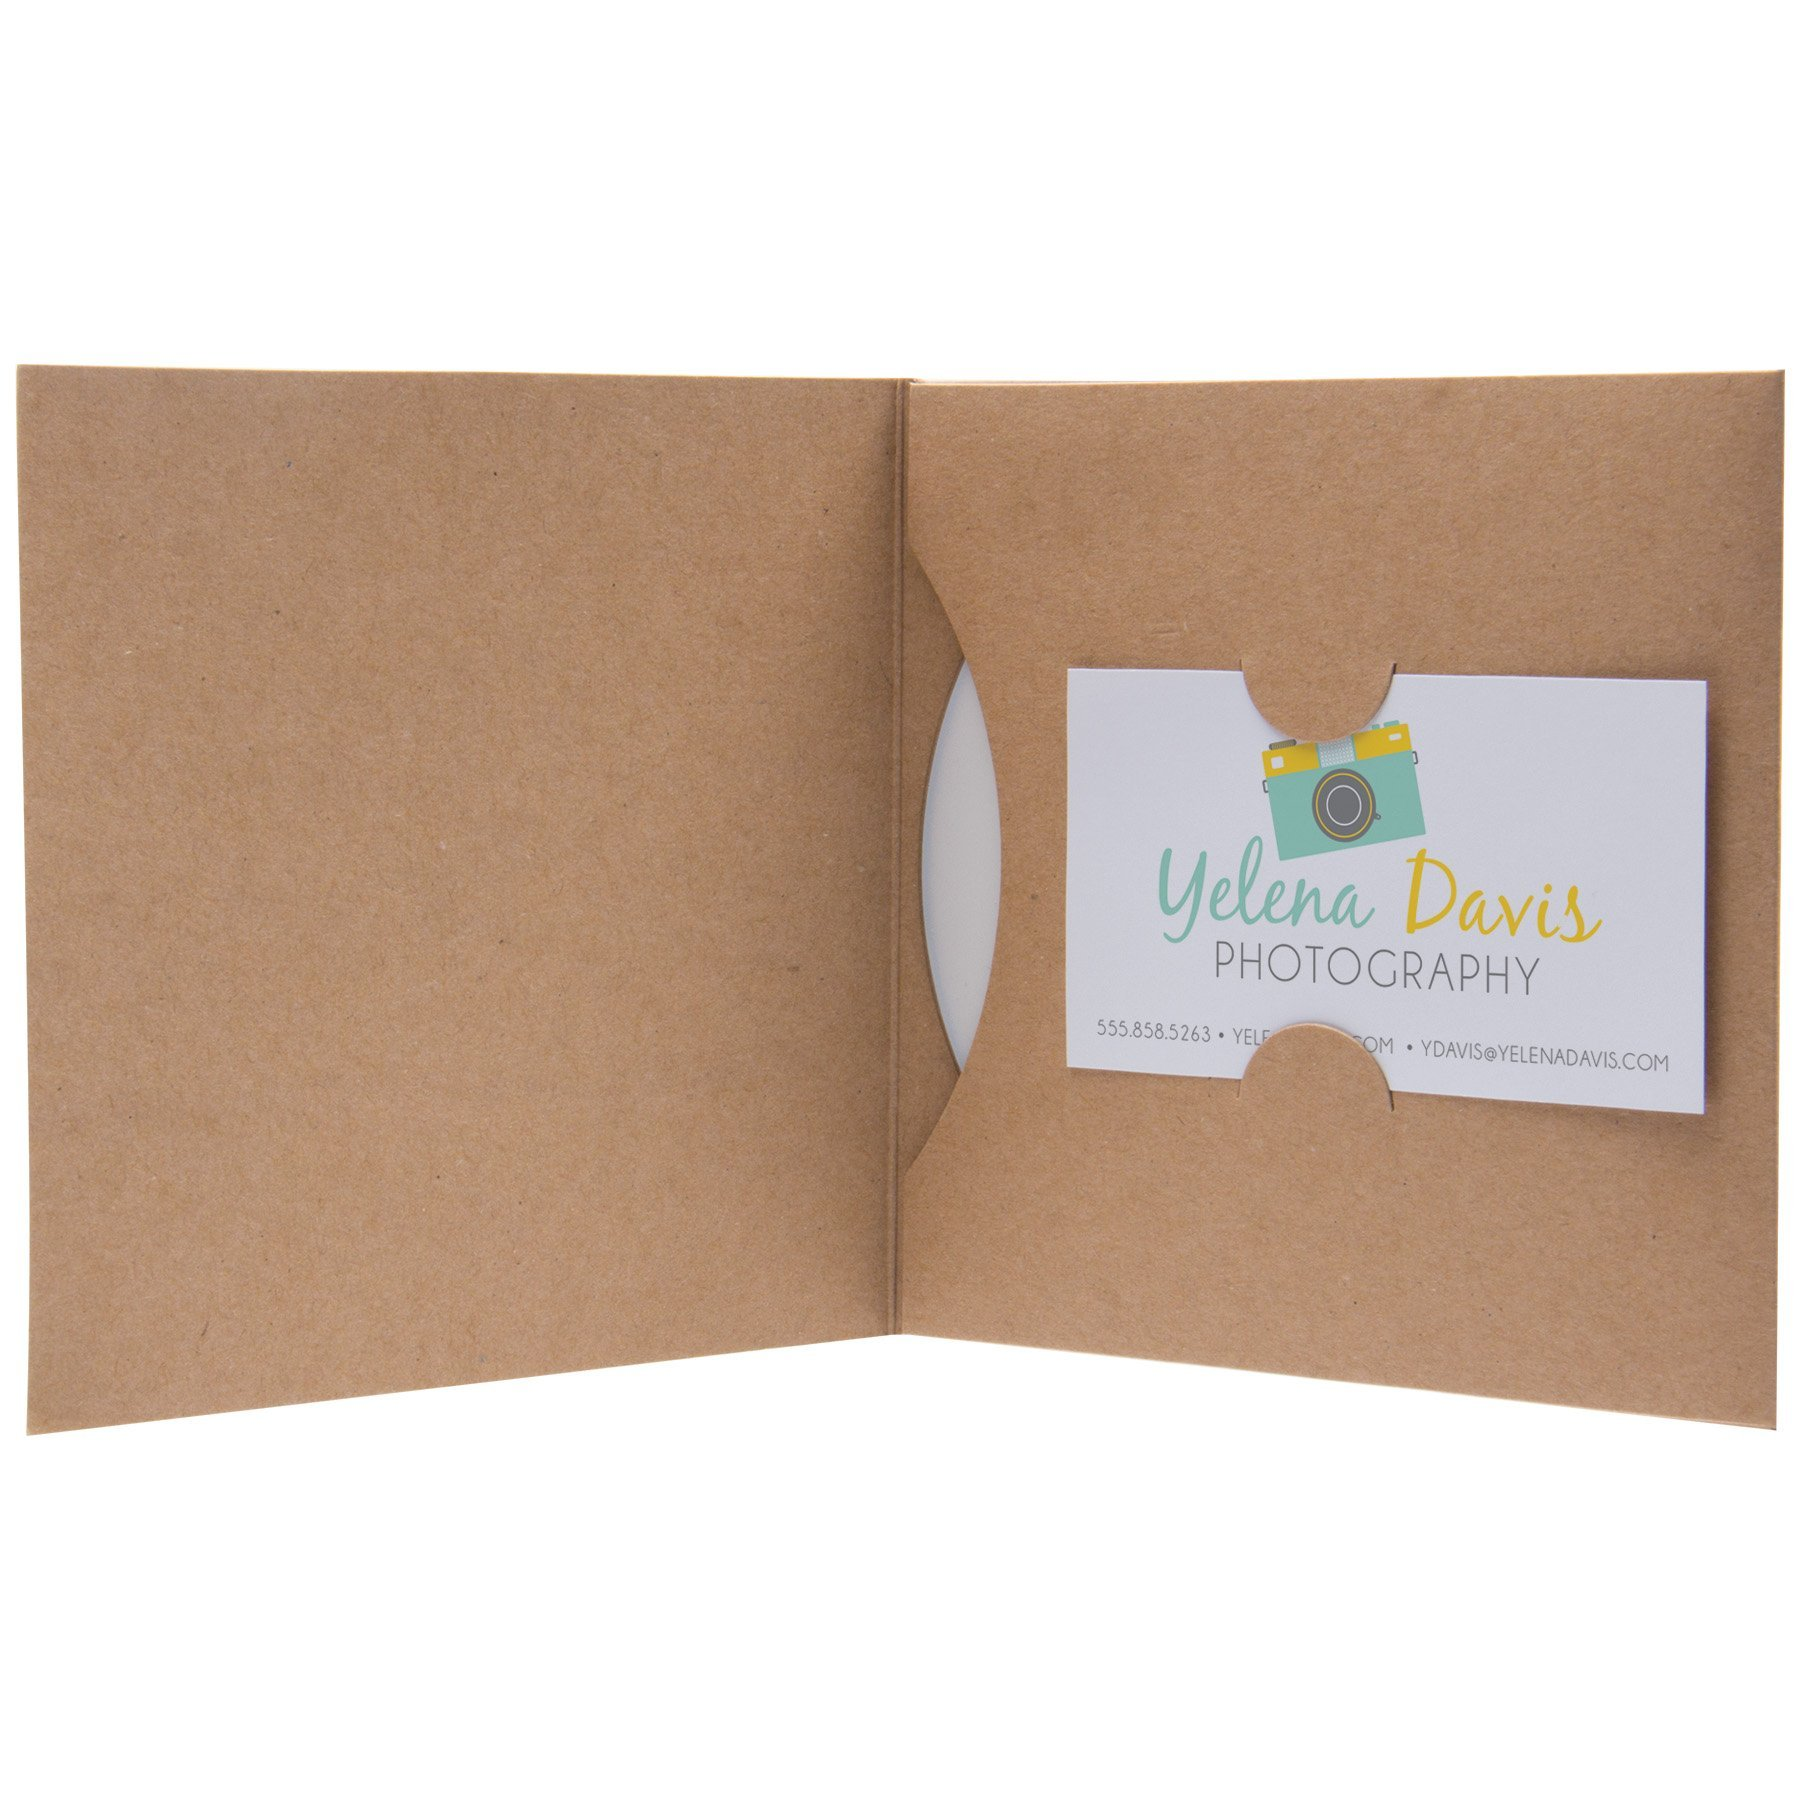 Paper CD or DVD and Business Card Holder Sleeve - 100 Pack (Kraft)